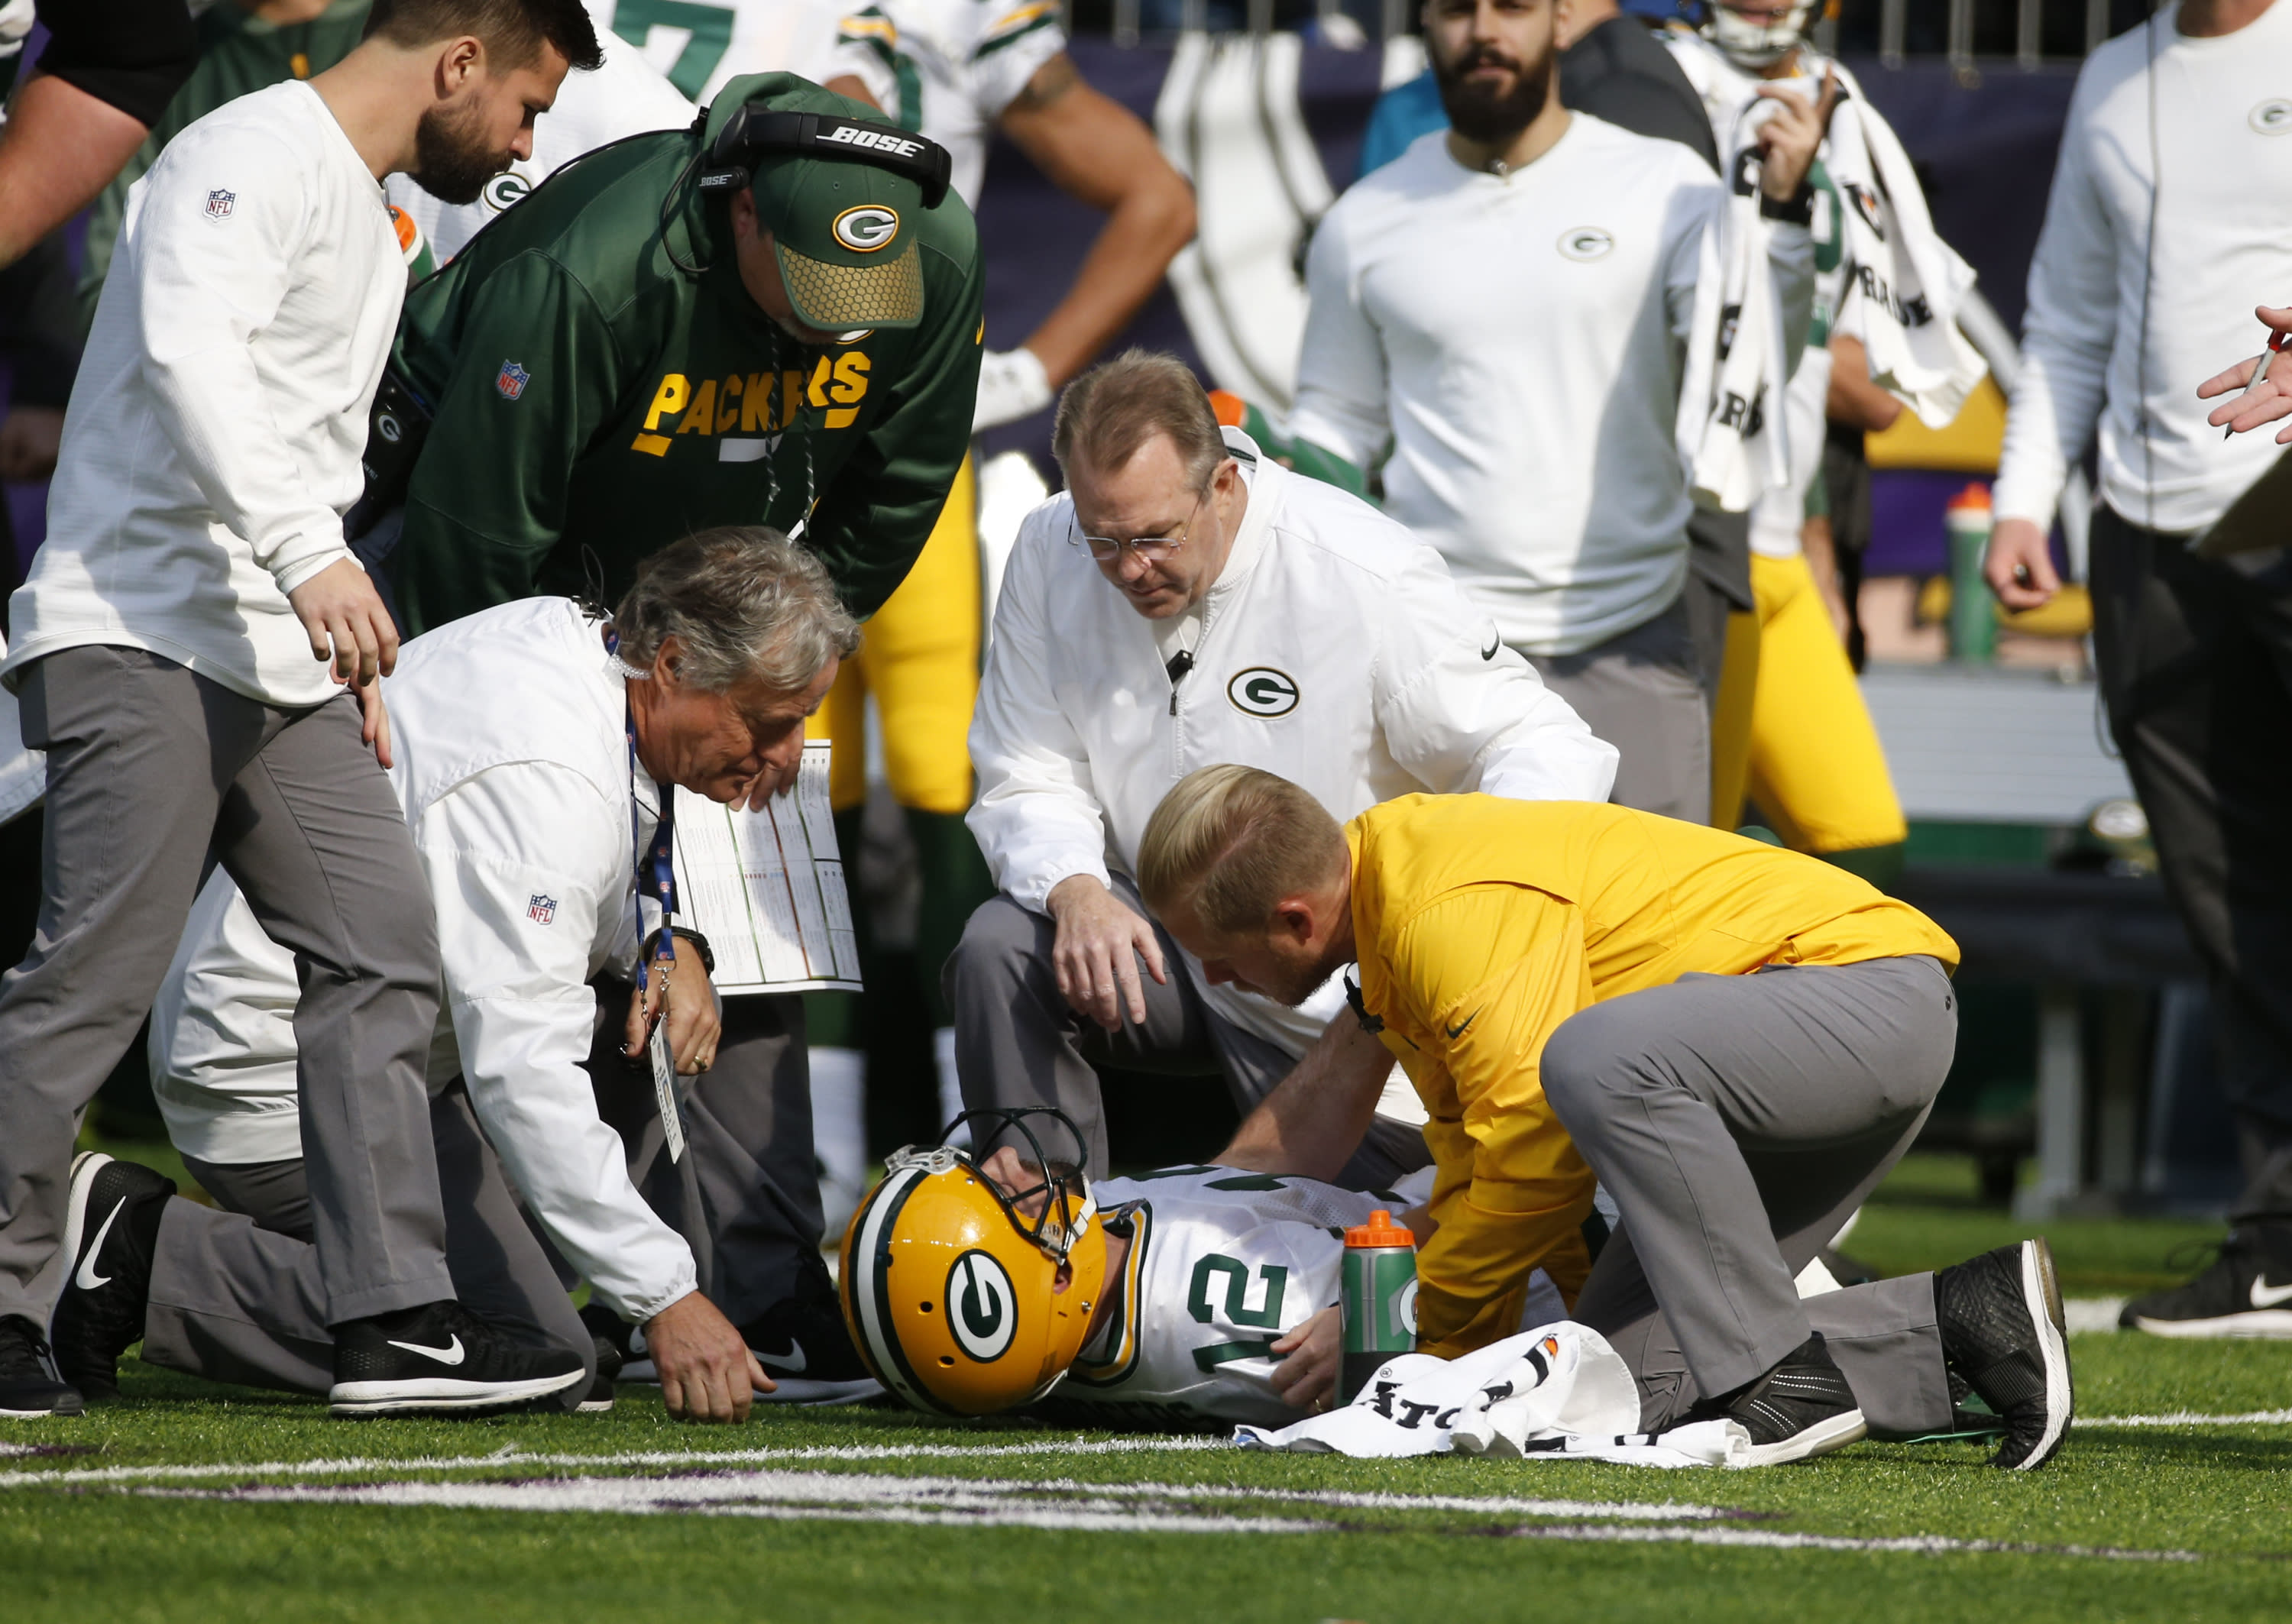 f1a7d86f0be75f356f23f644a53cf9f3 was the hit that injured aaron rodgers a dirty one?